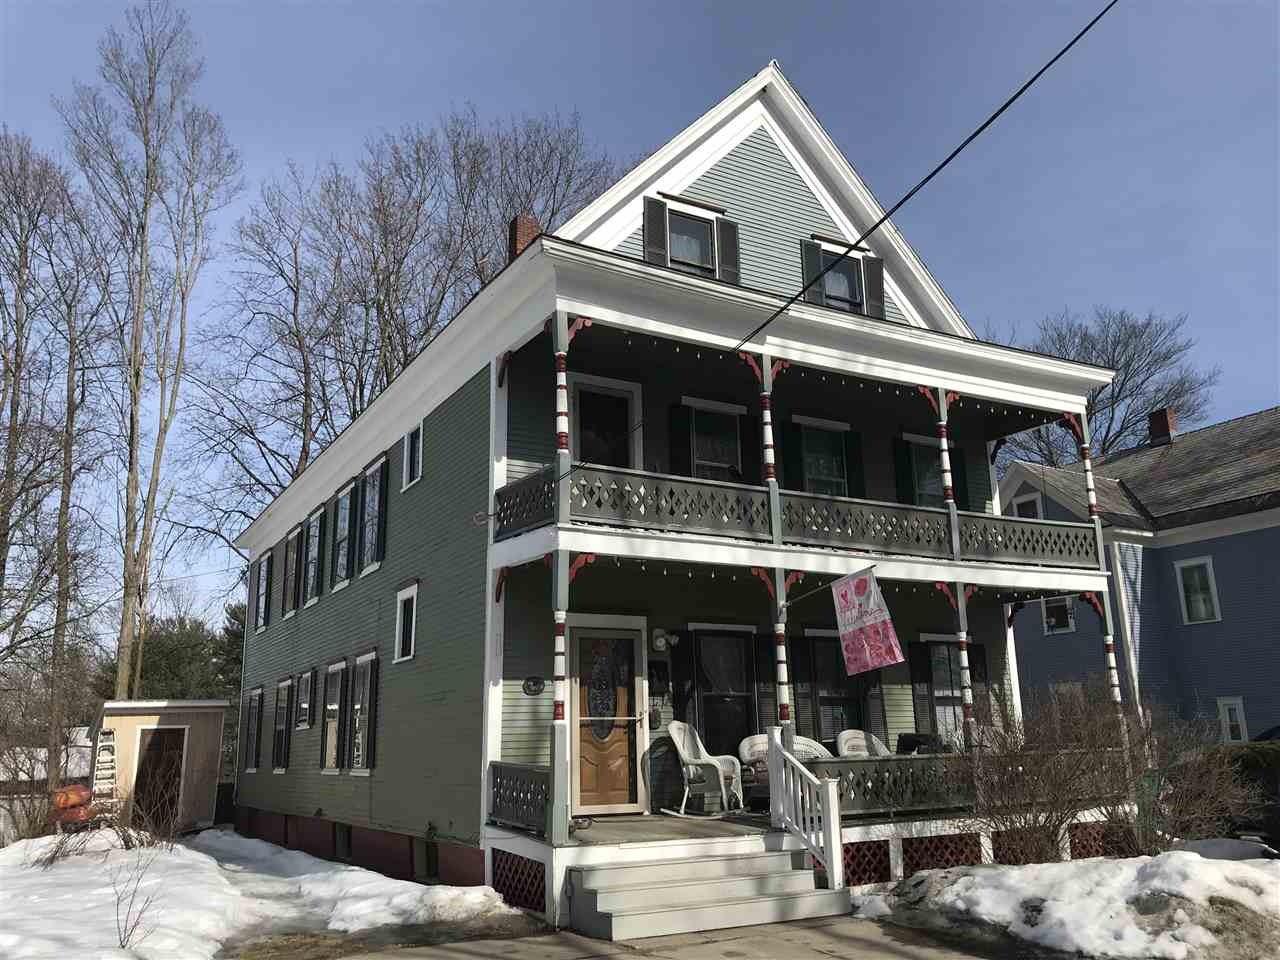 VILLAGE OF BELLOWS FALLS IN TOWN OF ROCKINGHAM VT Home for sale $$119,000 | $53 per sq.ft.